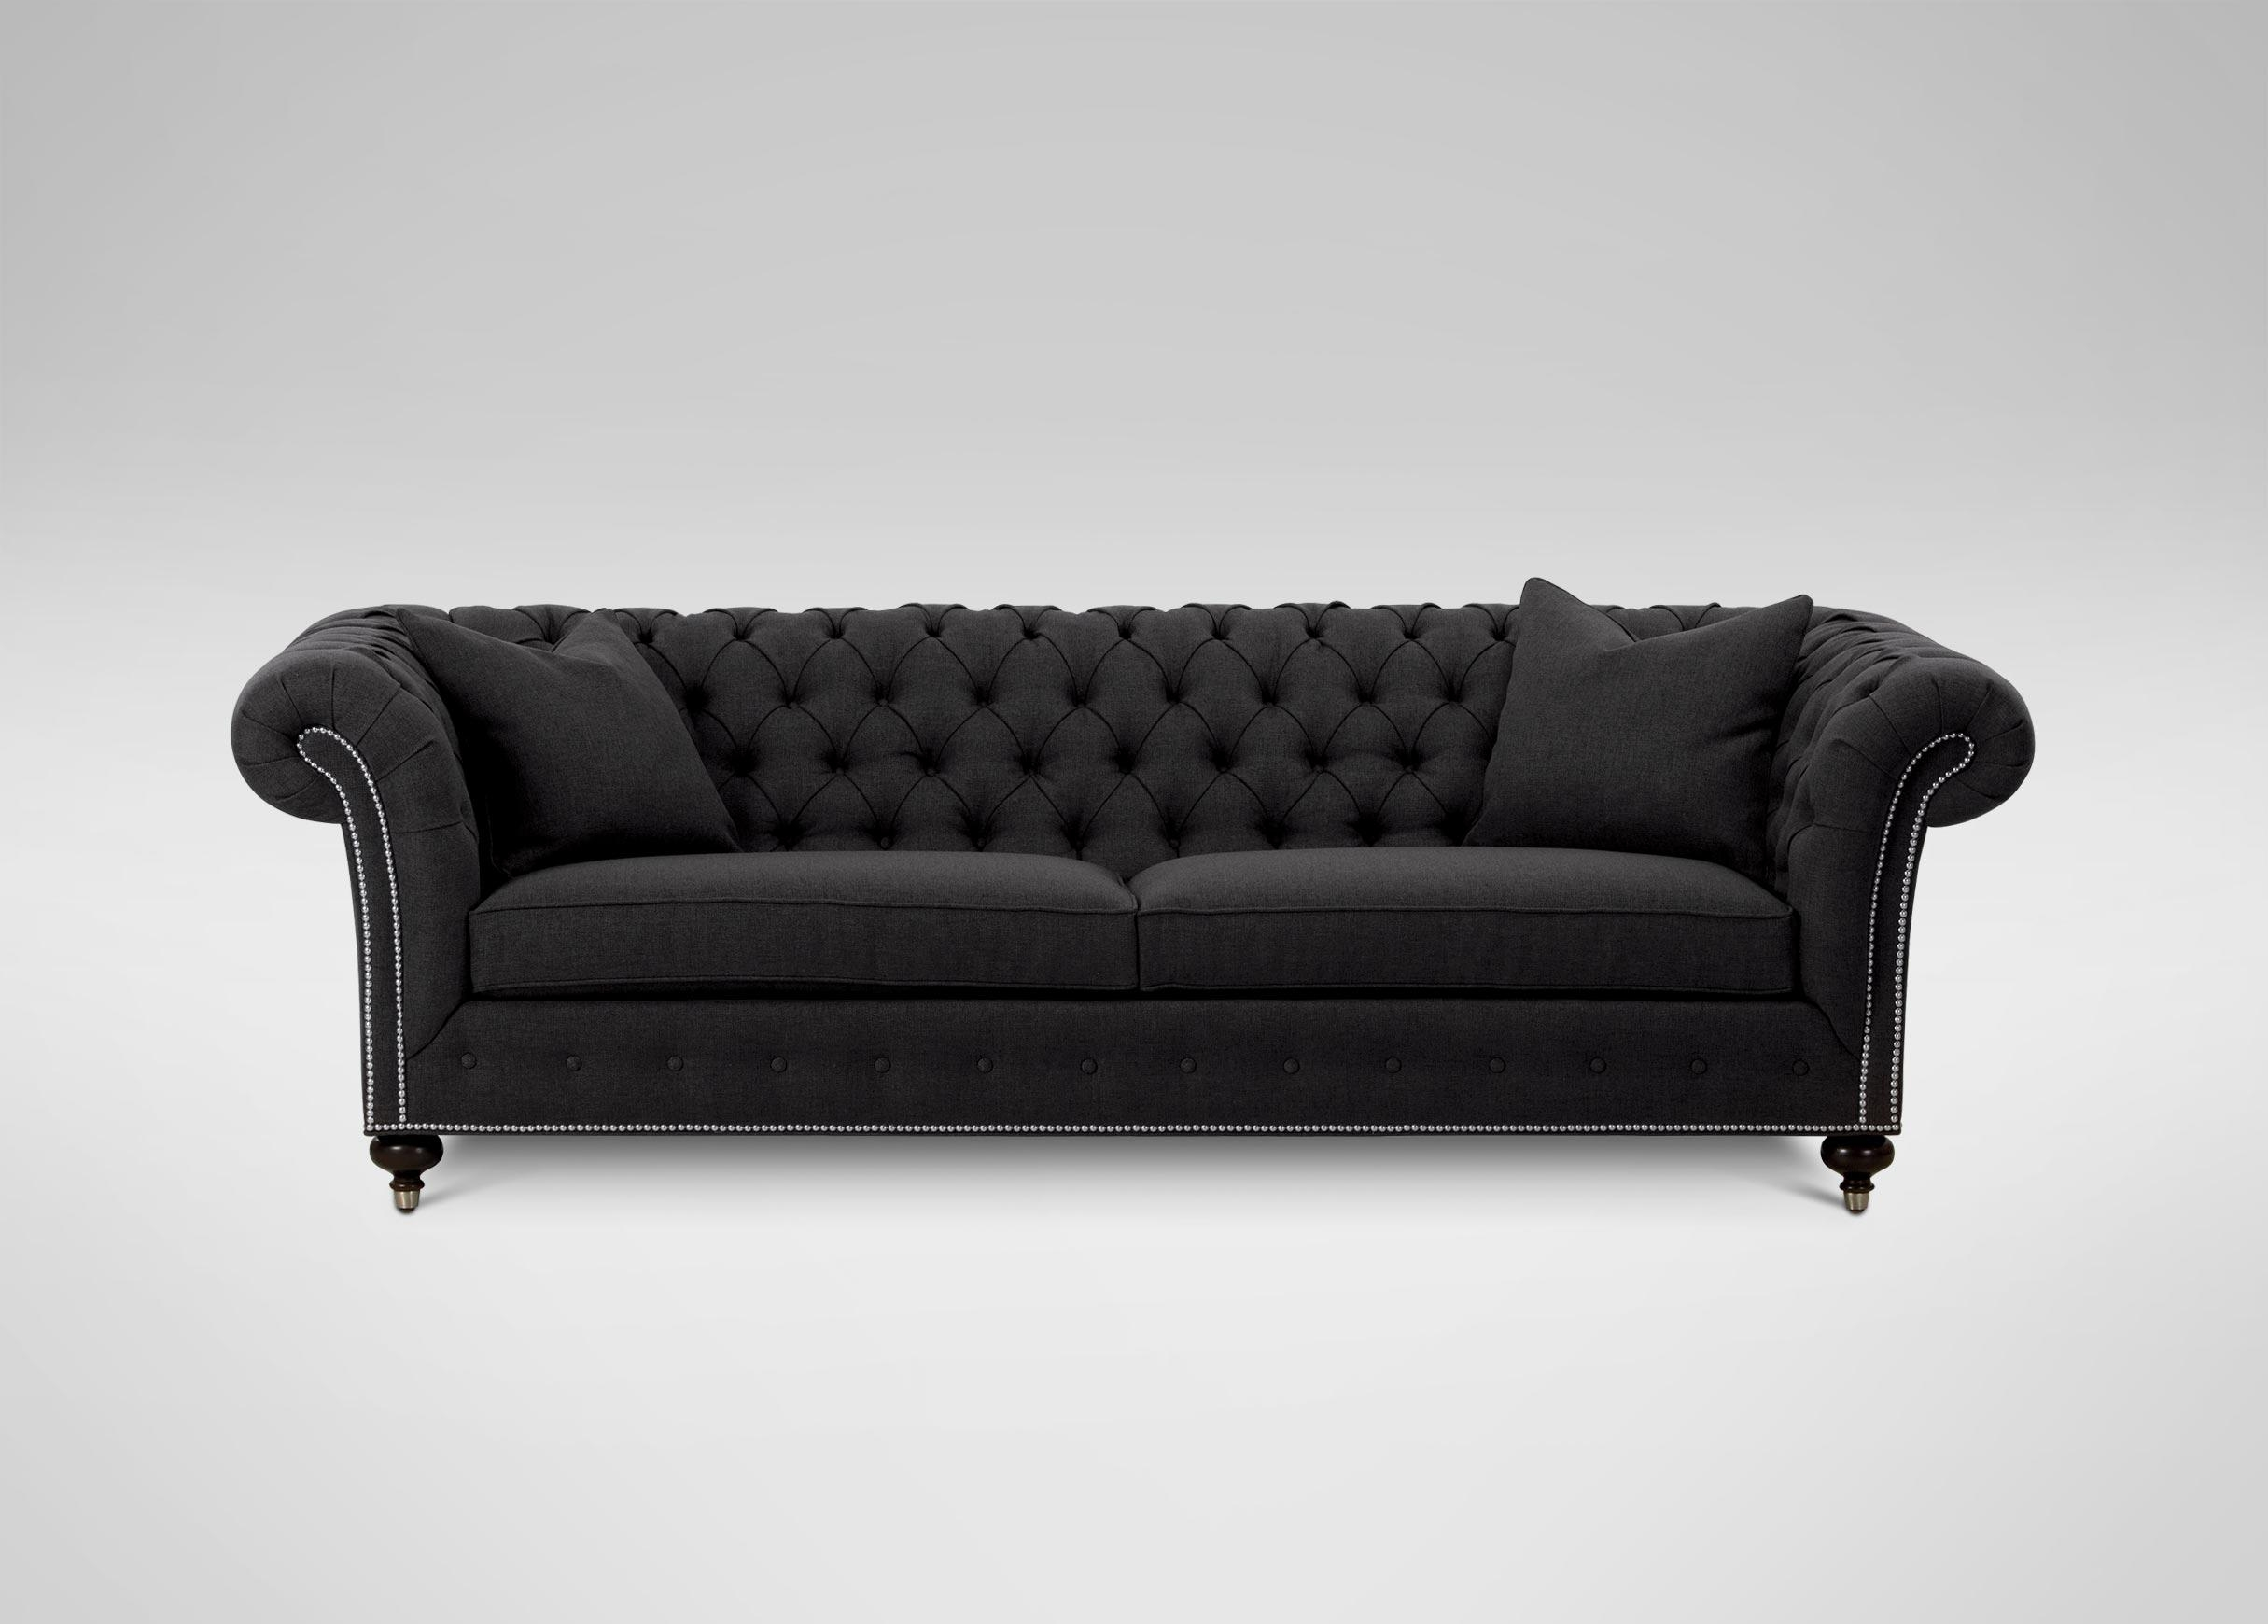 Mansfield Sofa | Sofas & Loveseats Regarding Chesterfield Black Sofas (View 15 of 20)